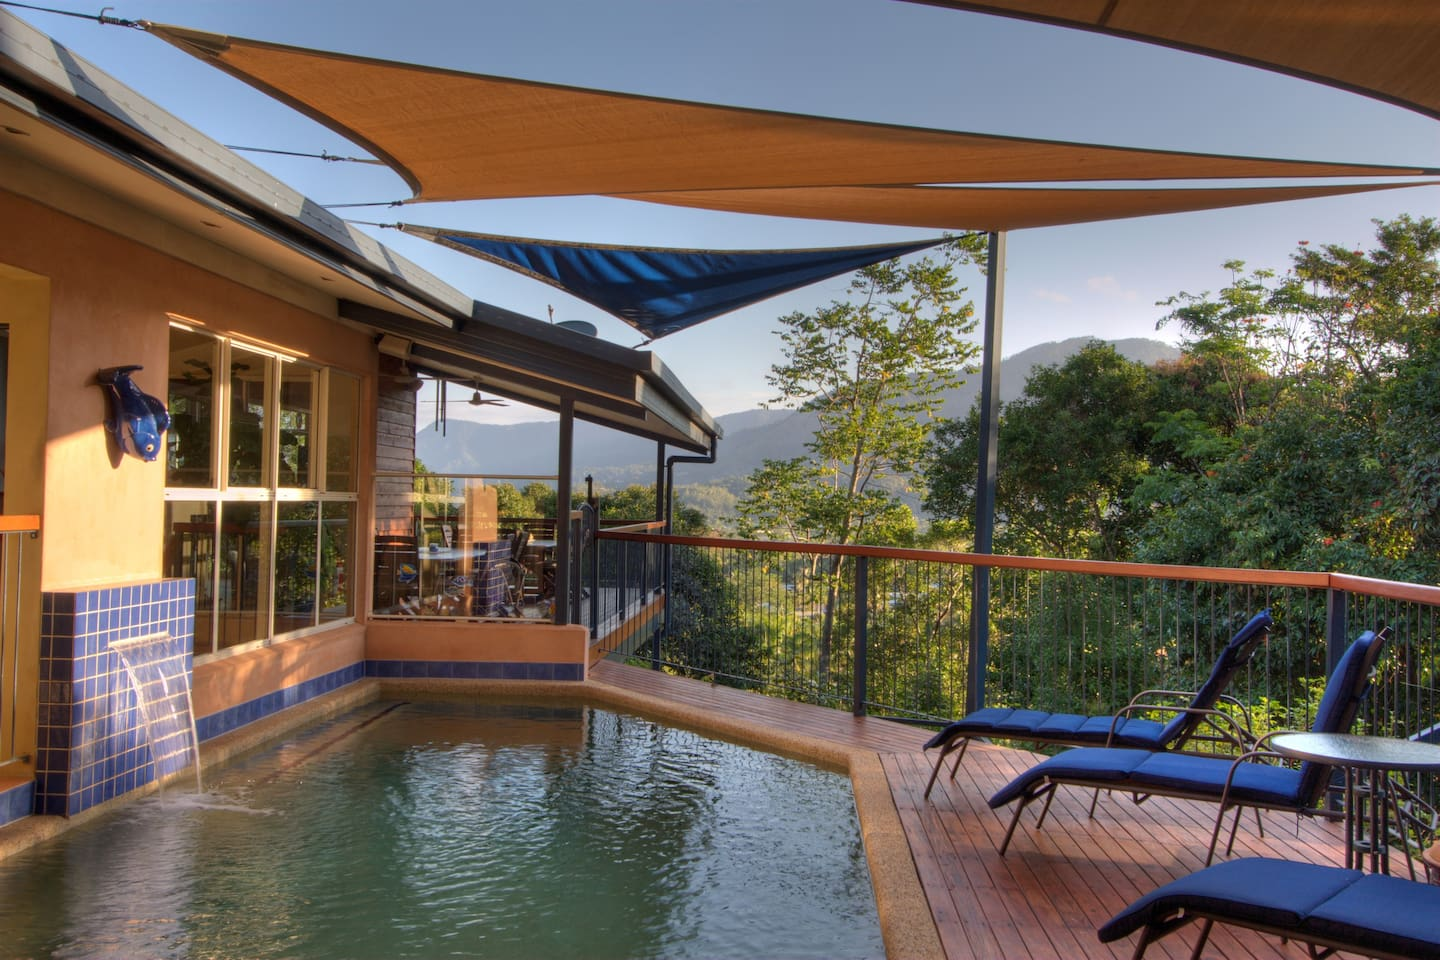 Relax by the pool; enjoy the nice and refreshing swimming pool at Kookas B&B